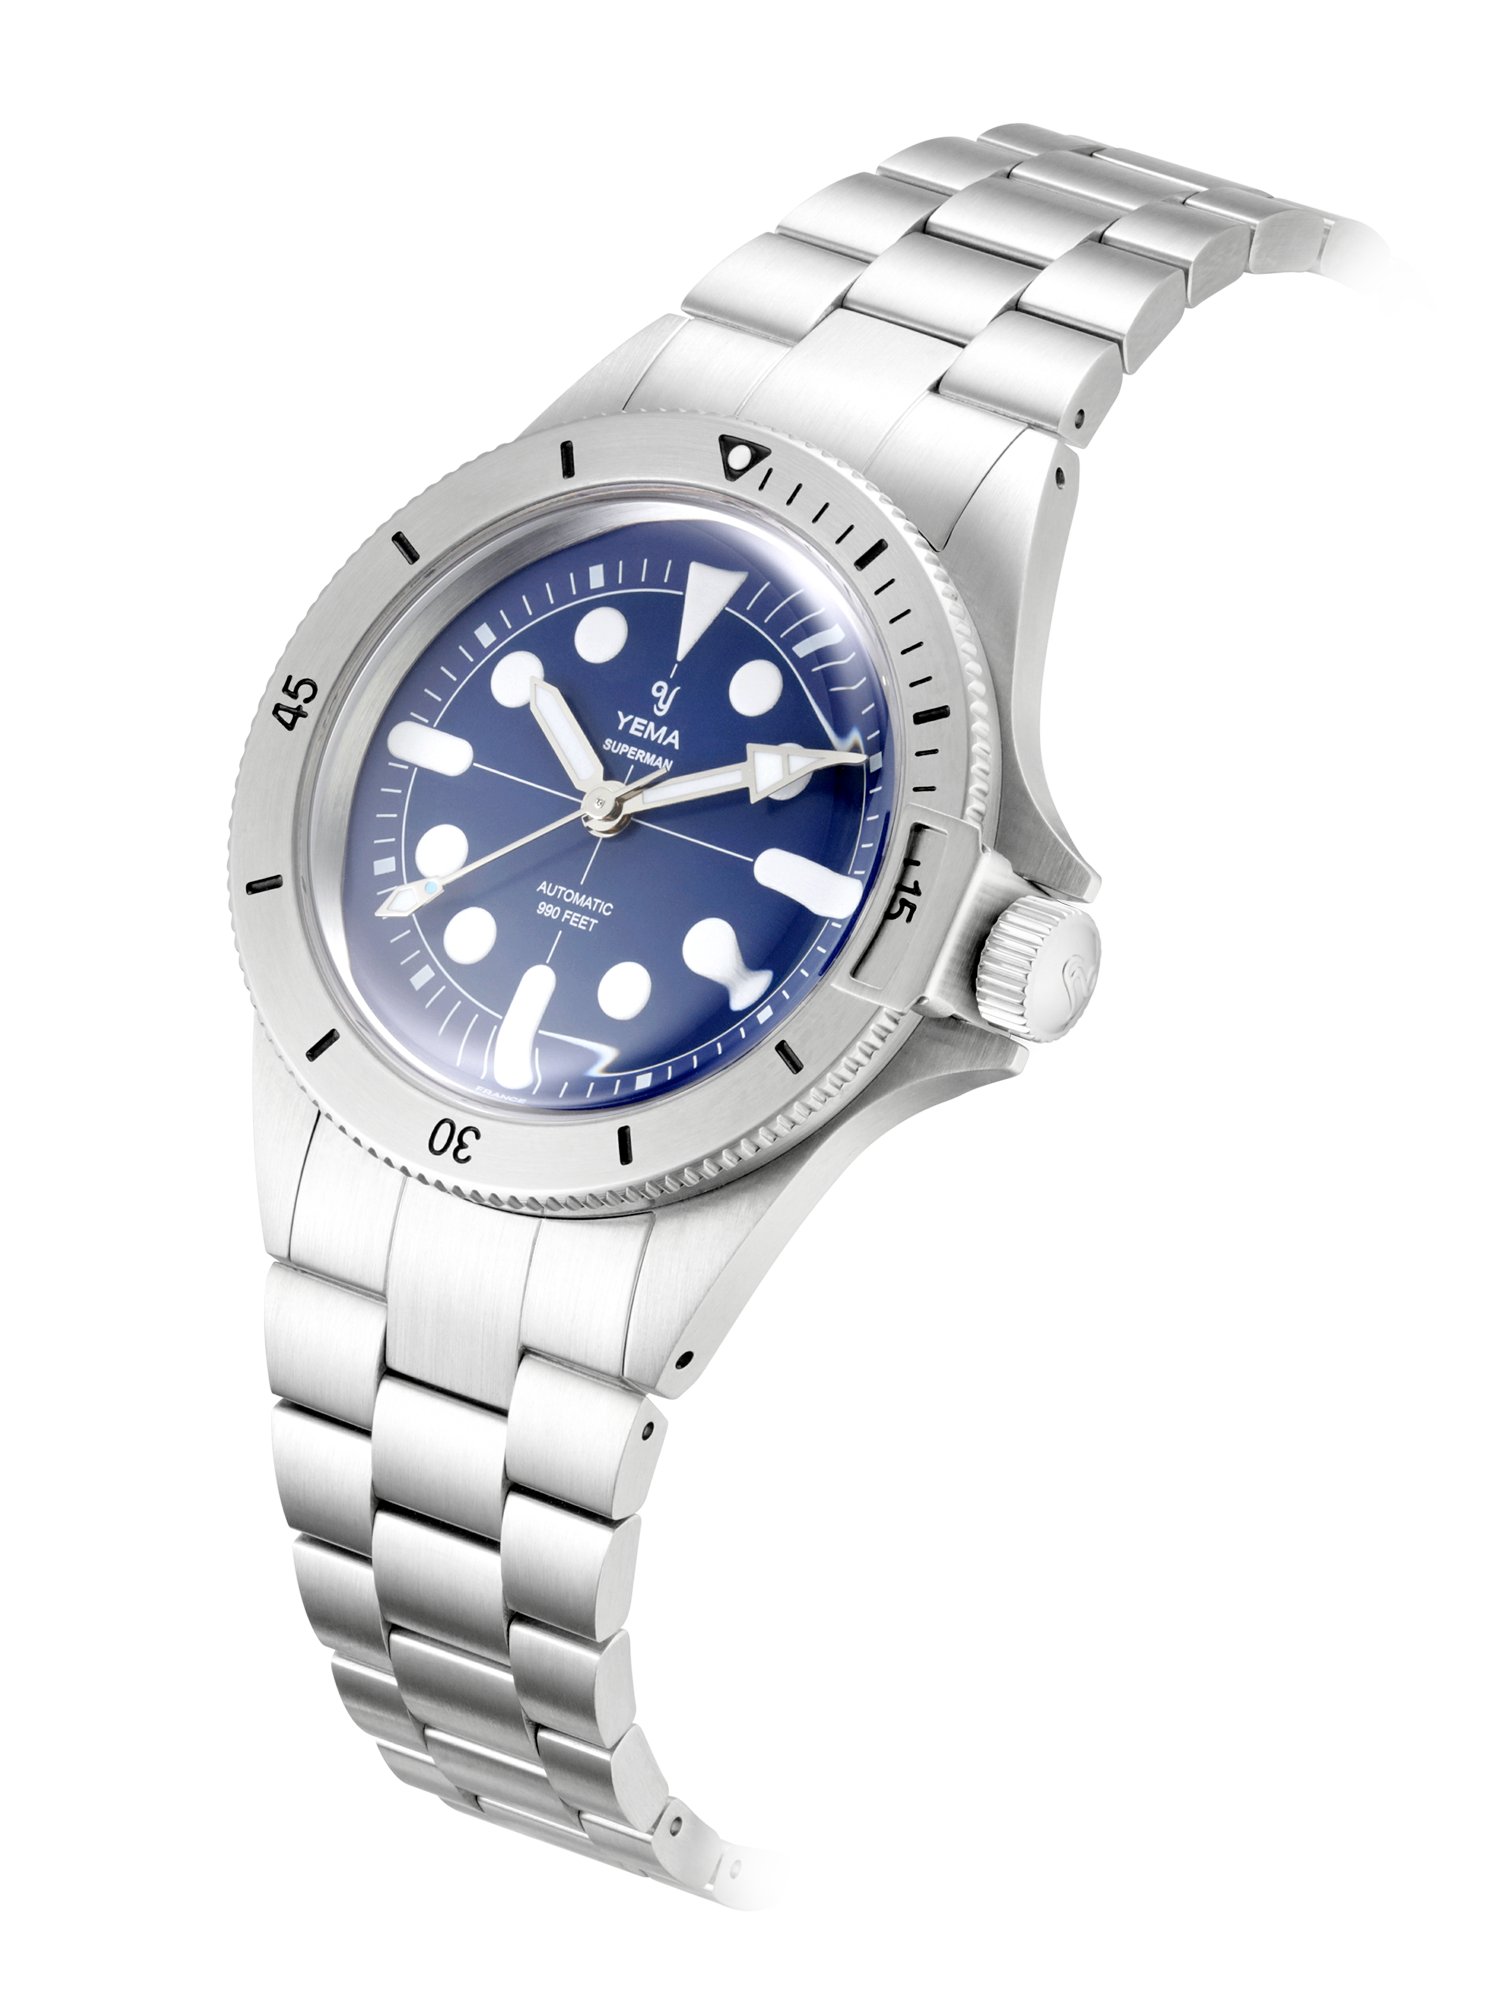 YEMA SUPERMAN MAXI DIAL BLUE, silver bezel, bezel lock mechanism.